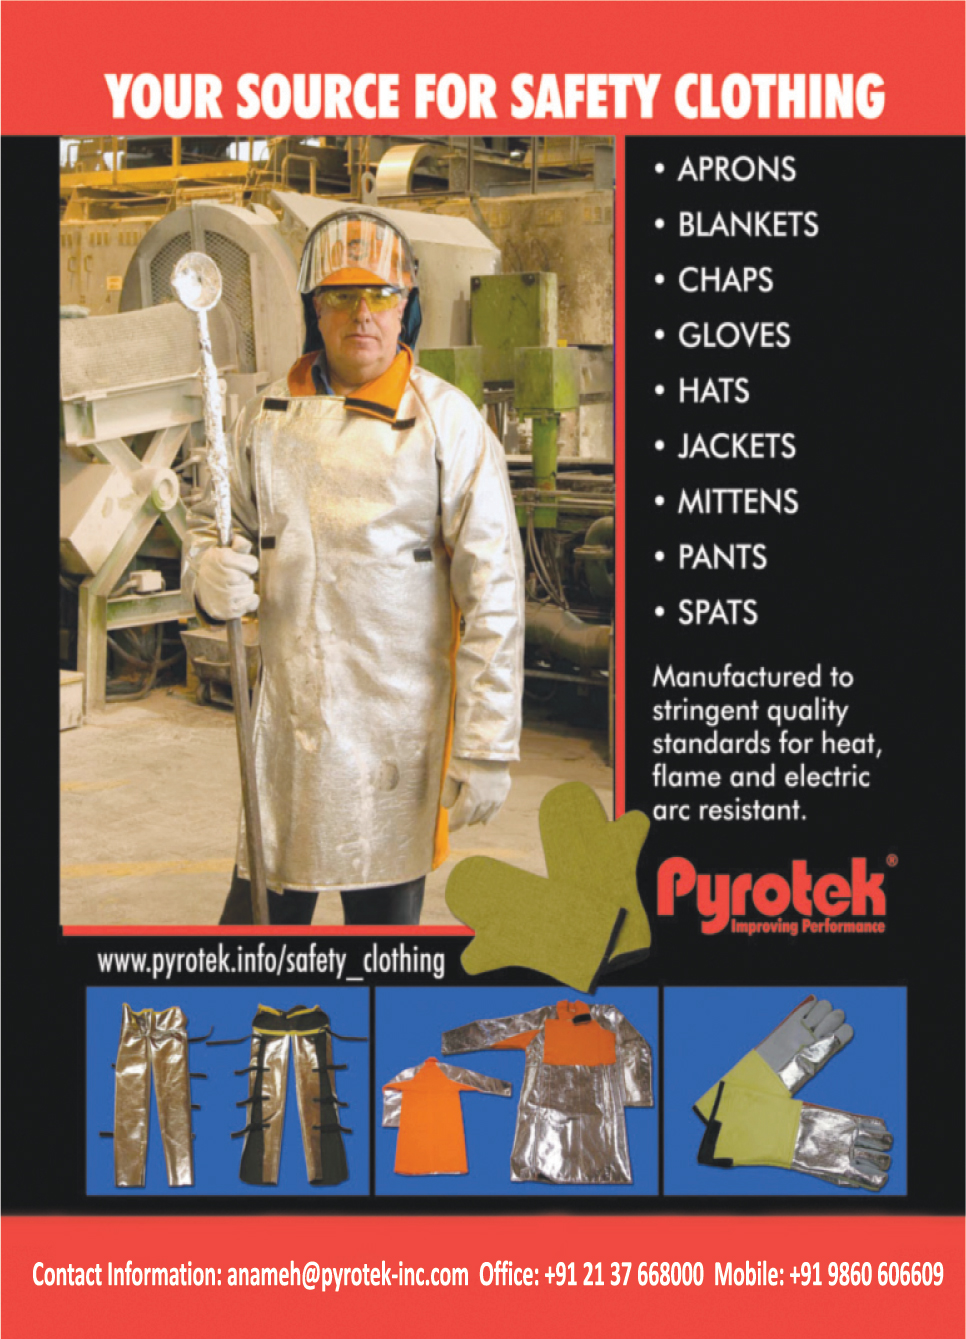 Safety Clothings, Safety Aprons, Safety Blankets, Safety Chaps, Safety Gloves, Safety Hts, Safety Jackets, Safety Mittens, Safety Pants, Safety Spats,